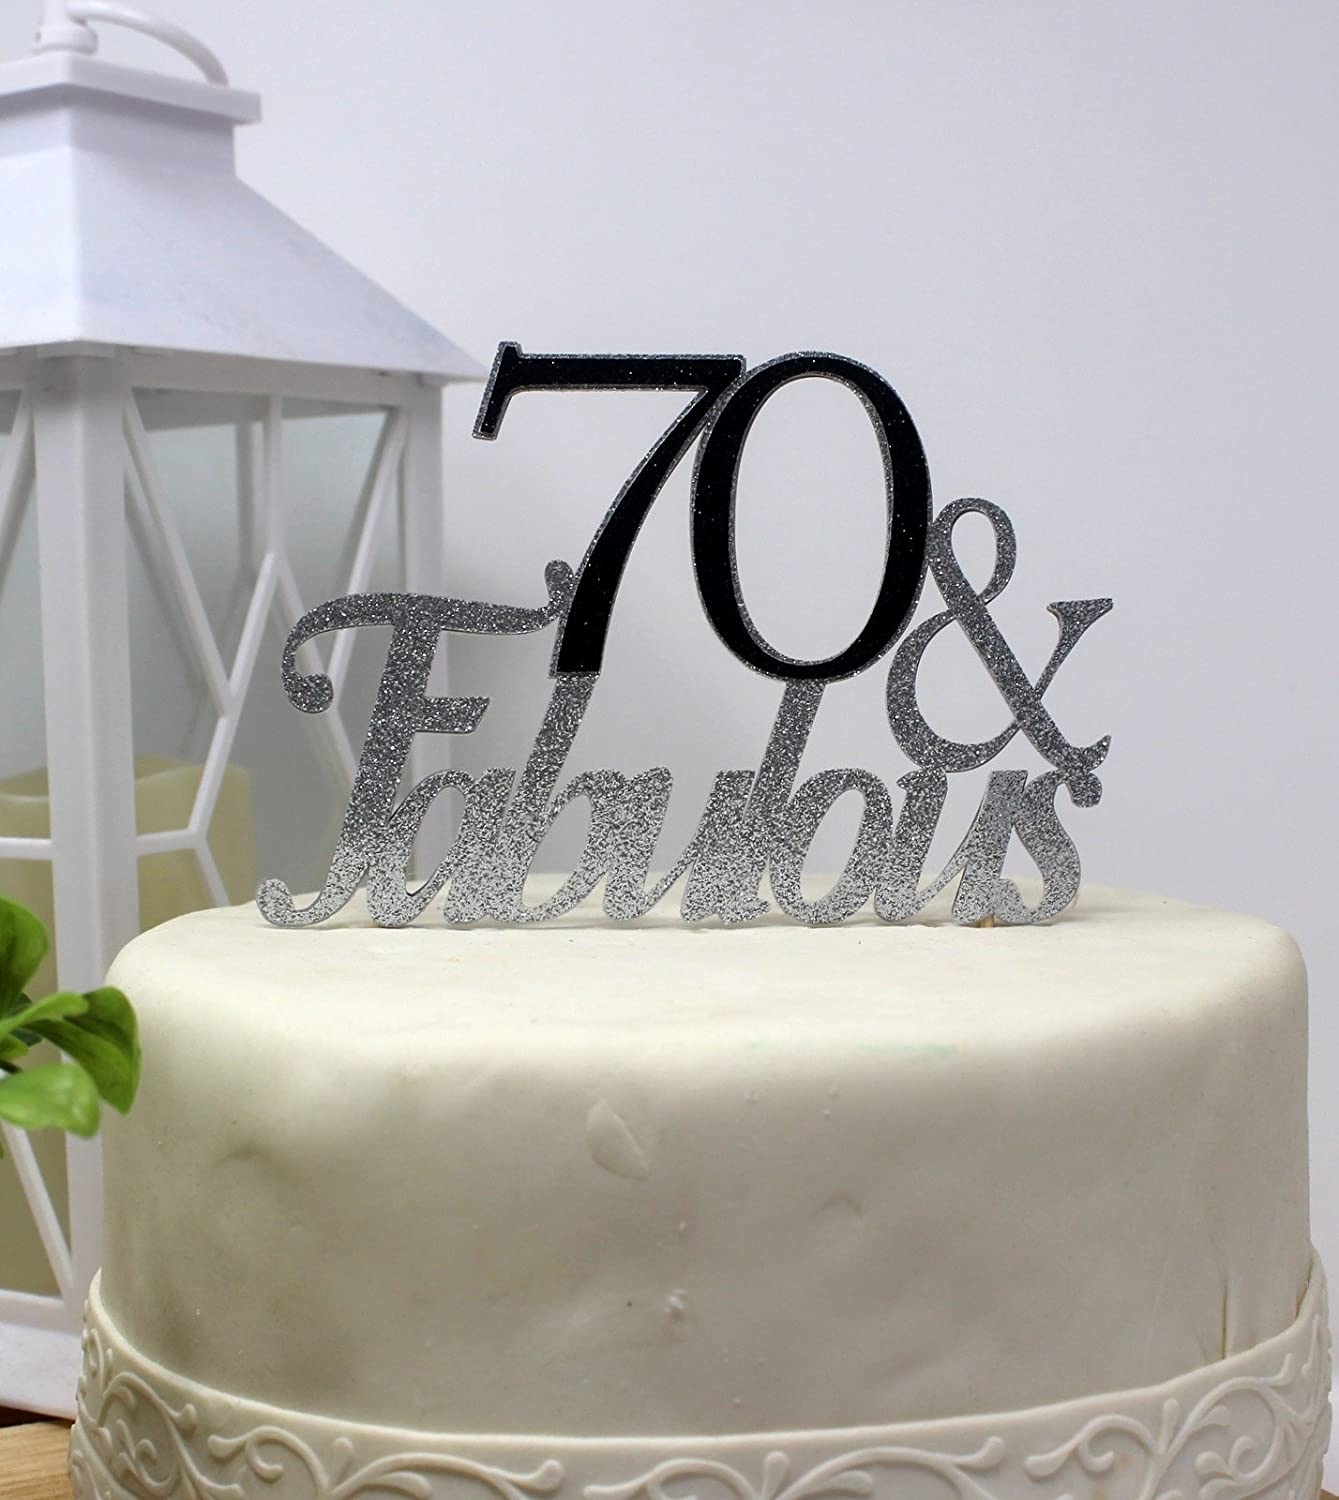 All About Details Pink 70-/&-fabulous Cake Topper